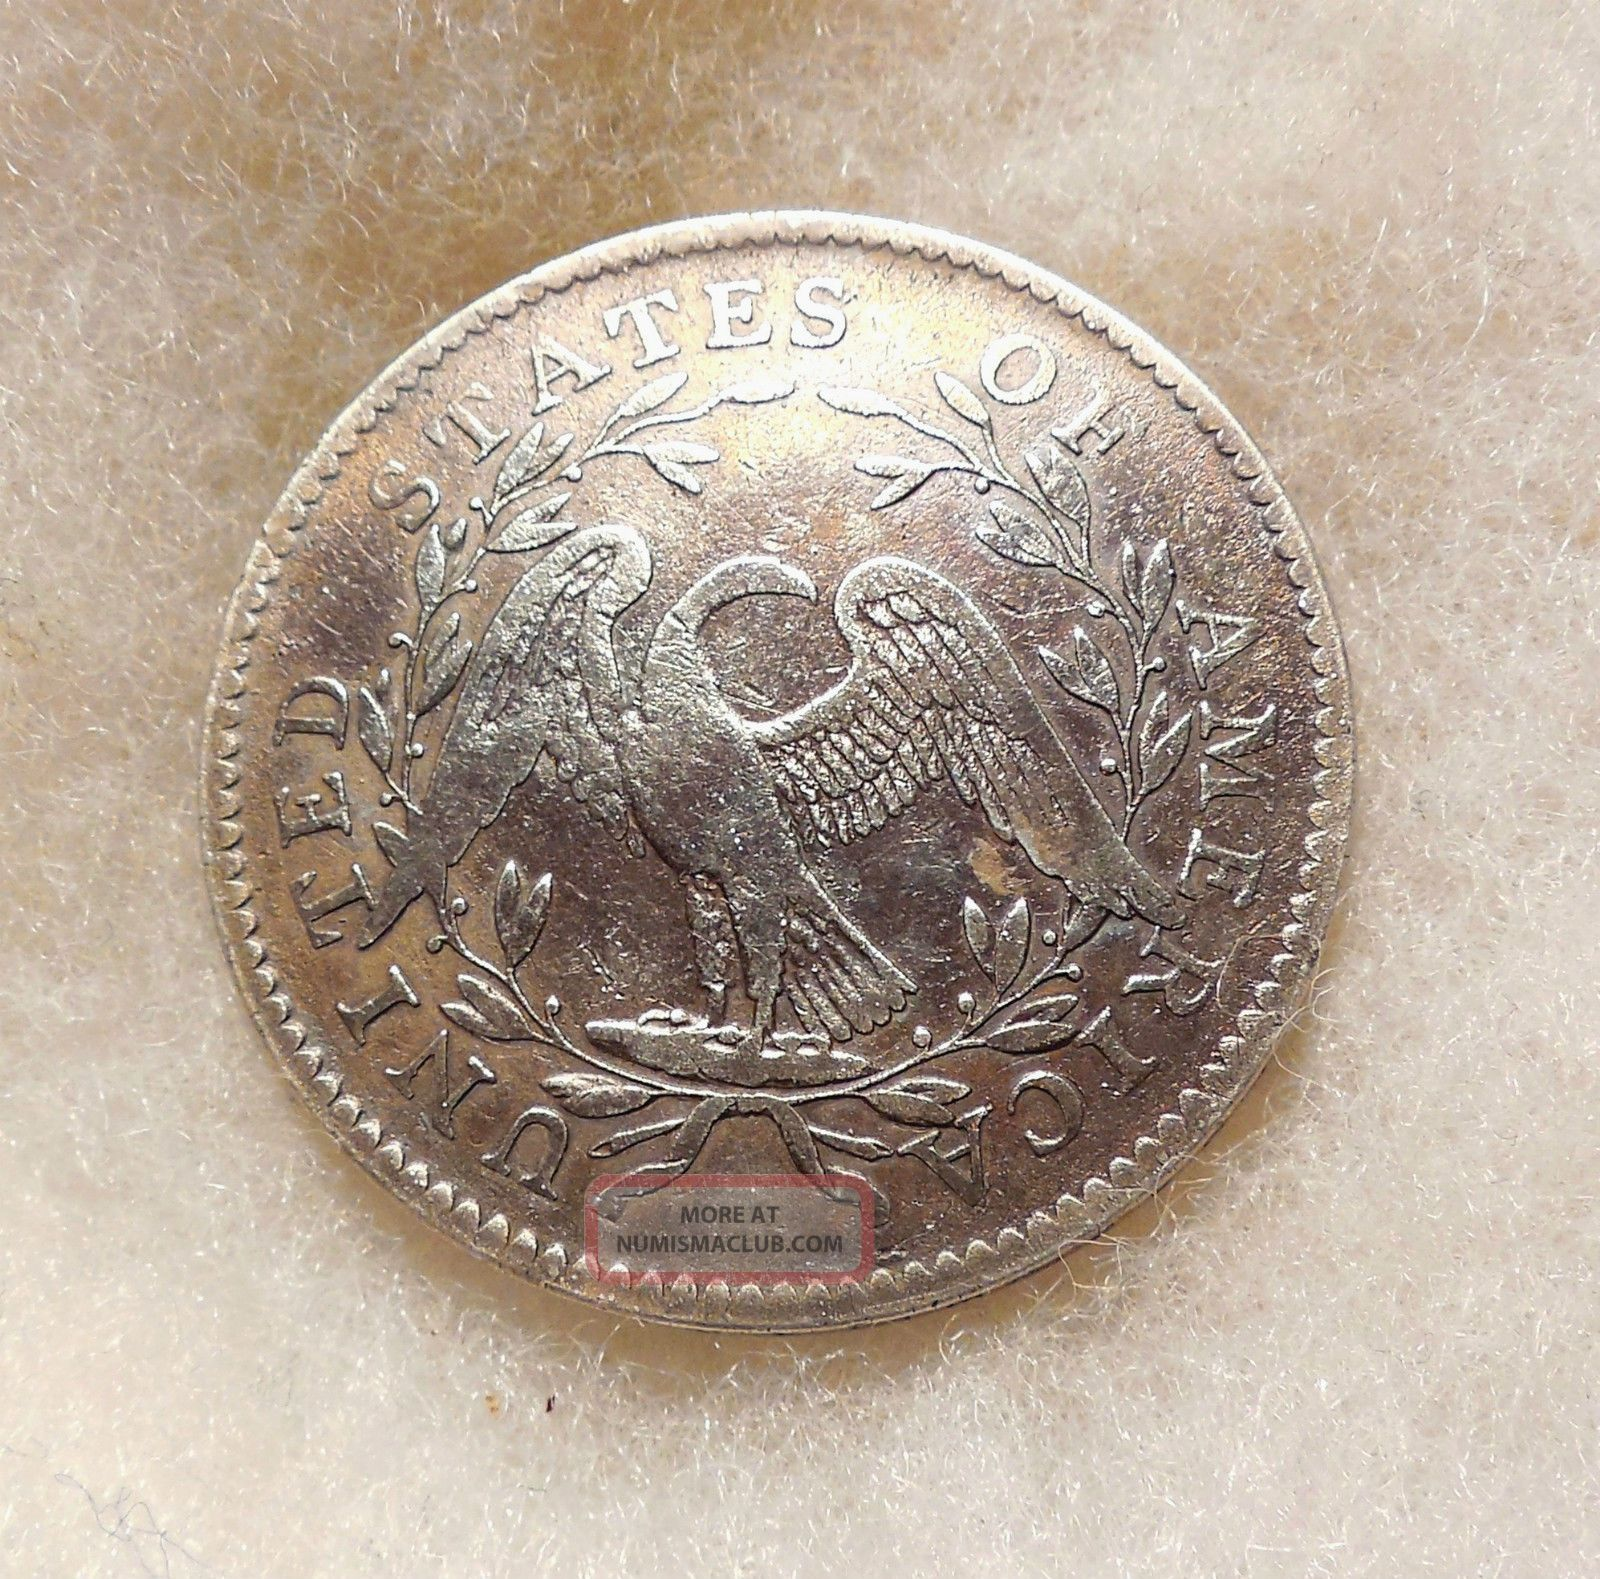 1829 Capped Bust Half Dollar 1829 Capped Bust Half Dollar